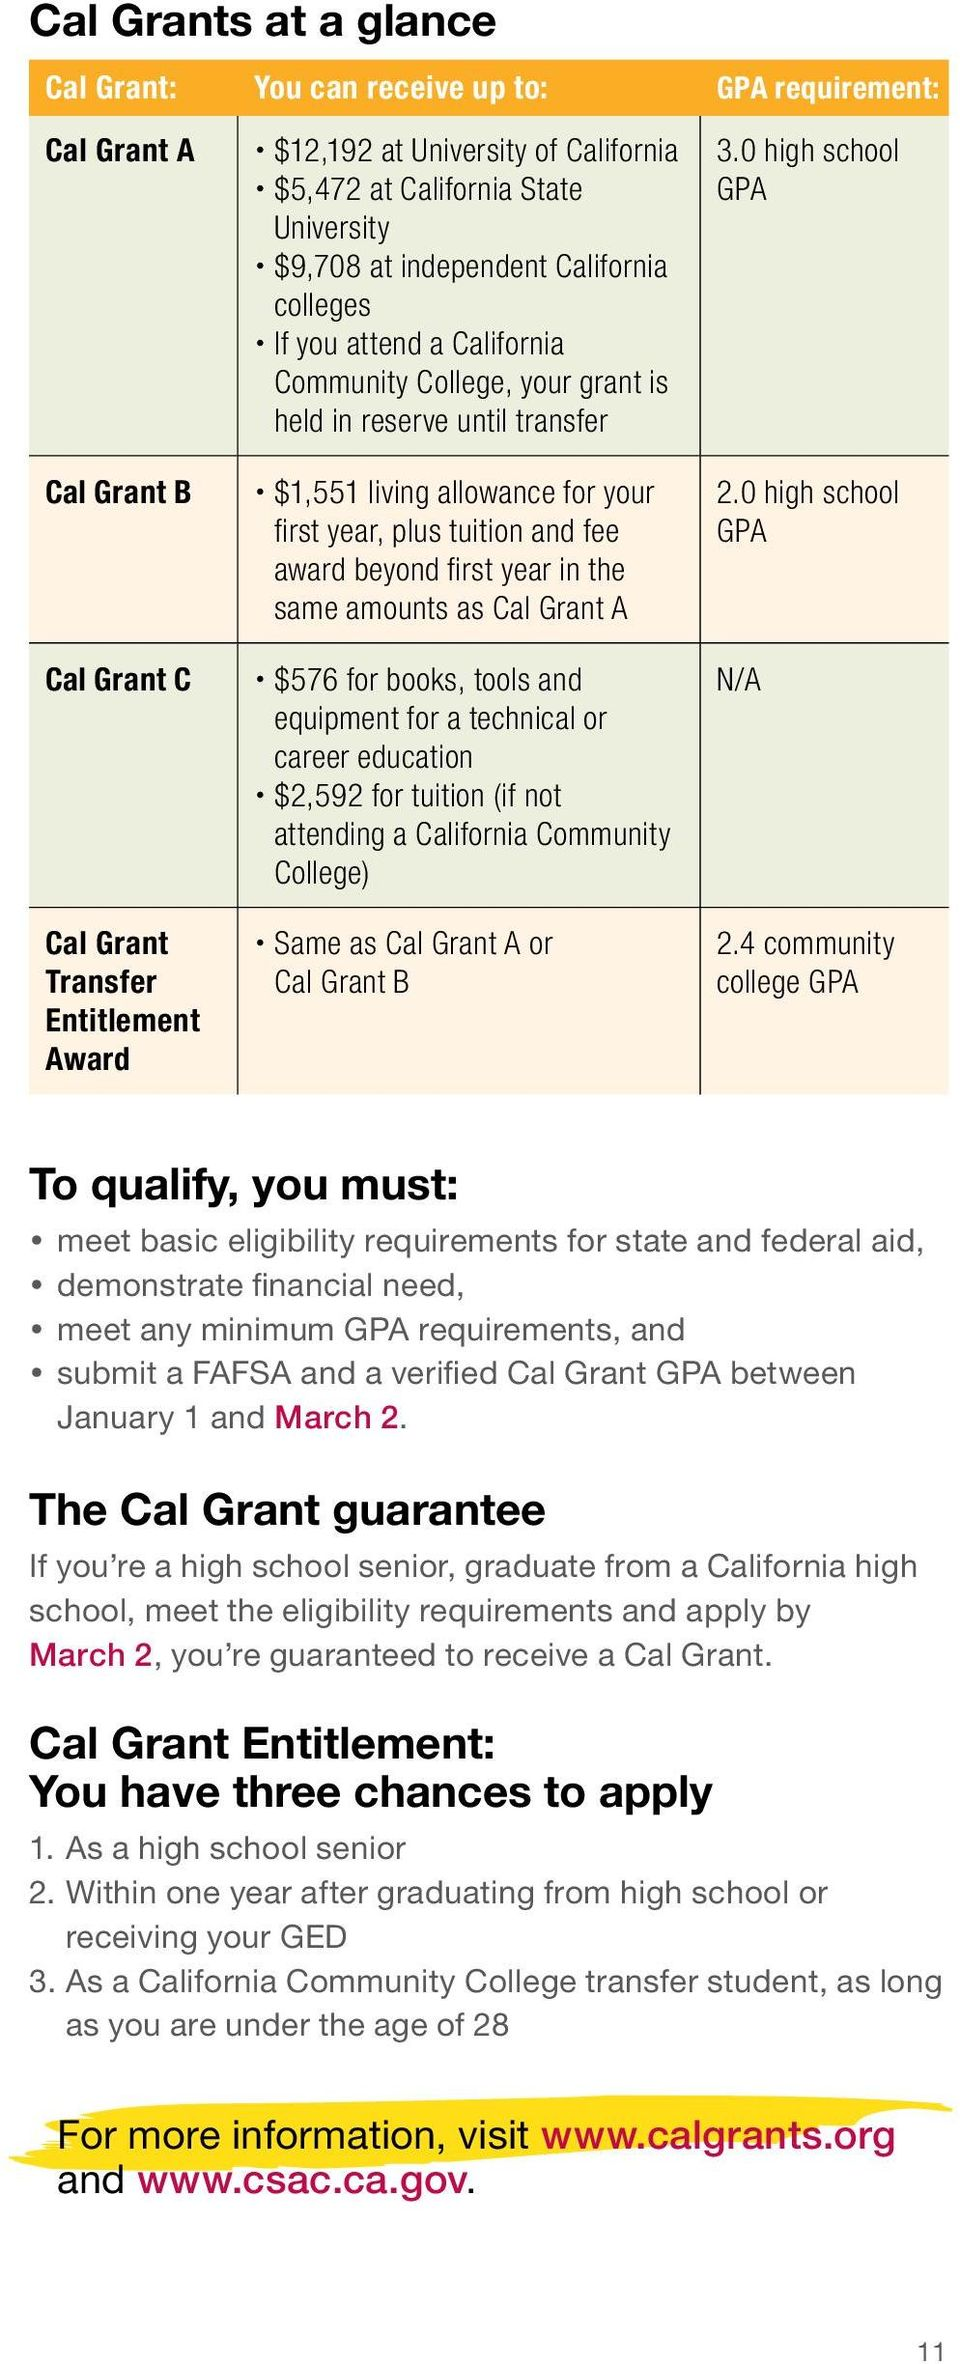 first year, plus tuition and fee award beyond first year in the same amounts as Cal Grant A x$576 for books, tools and equipment for a technical or career education x$2,592 for tuition (if not